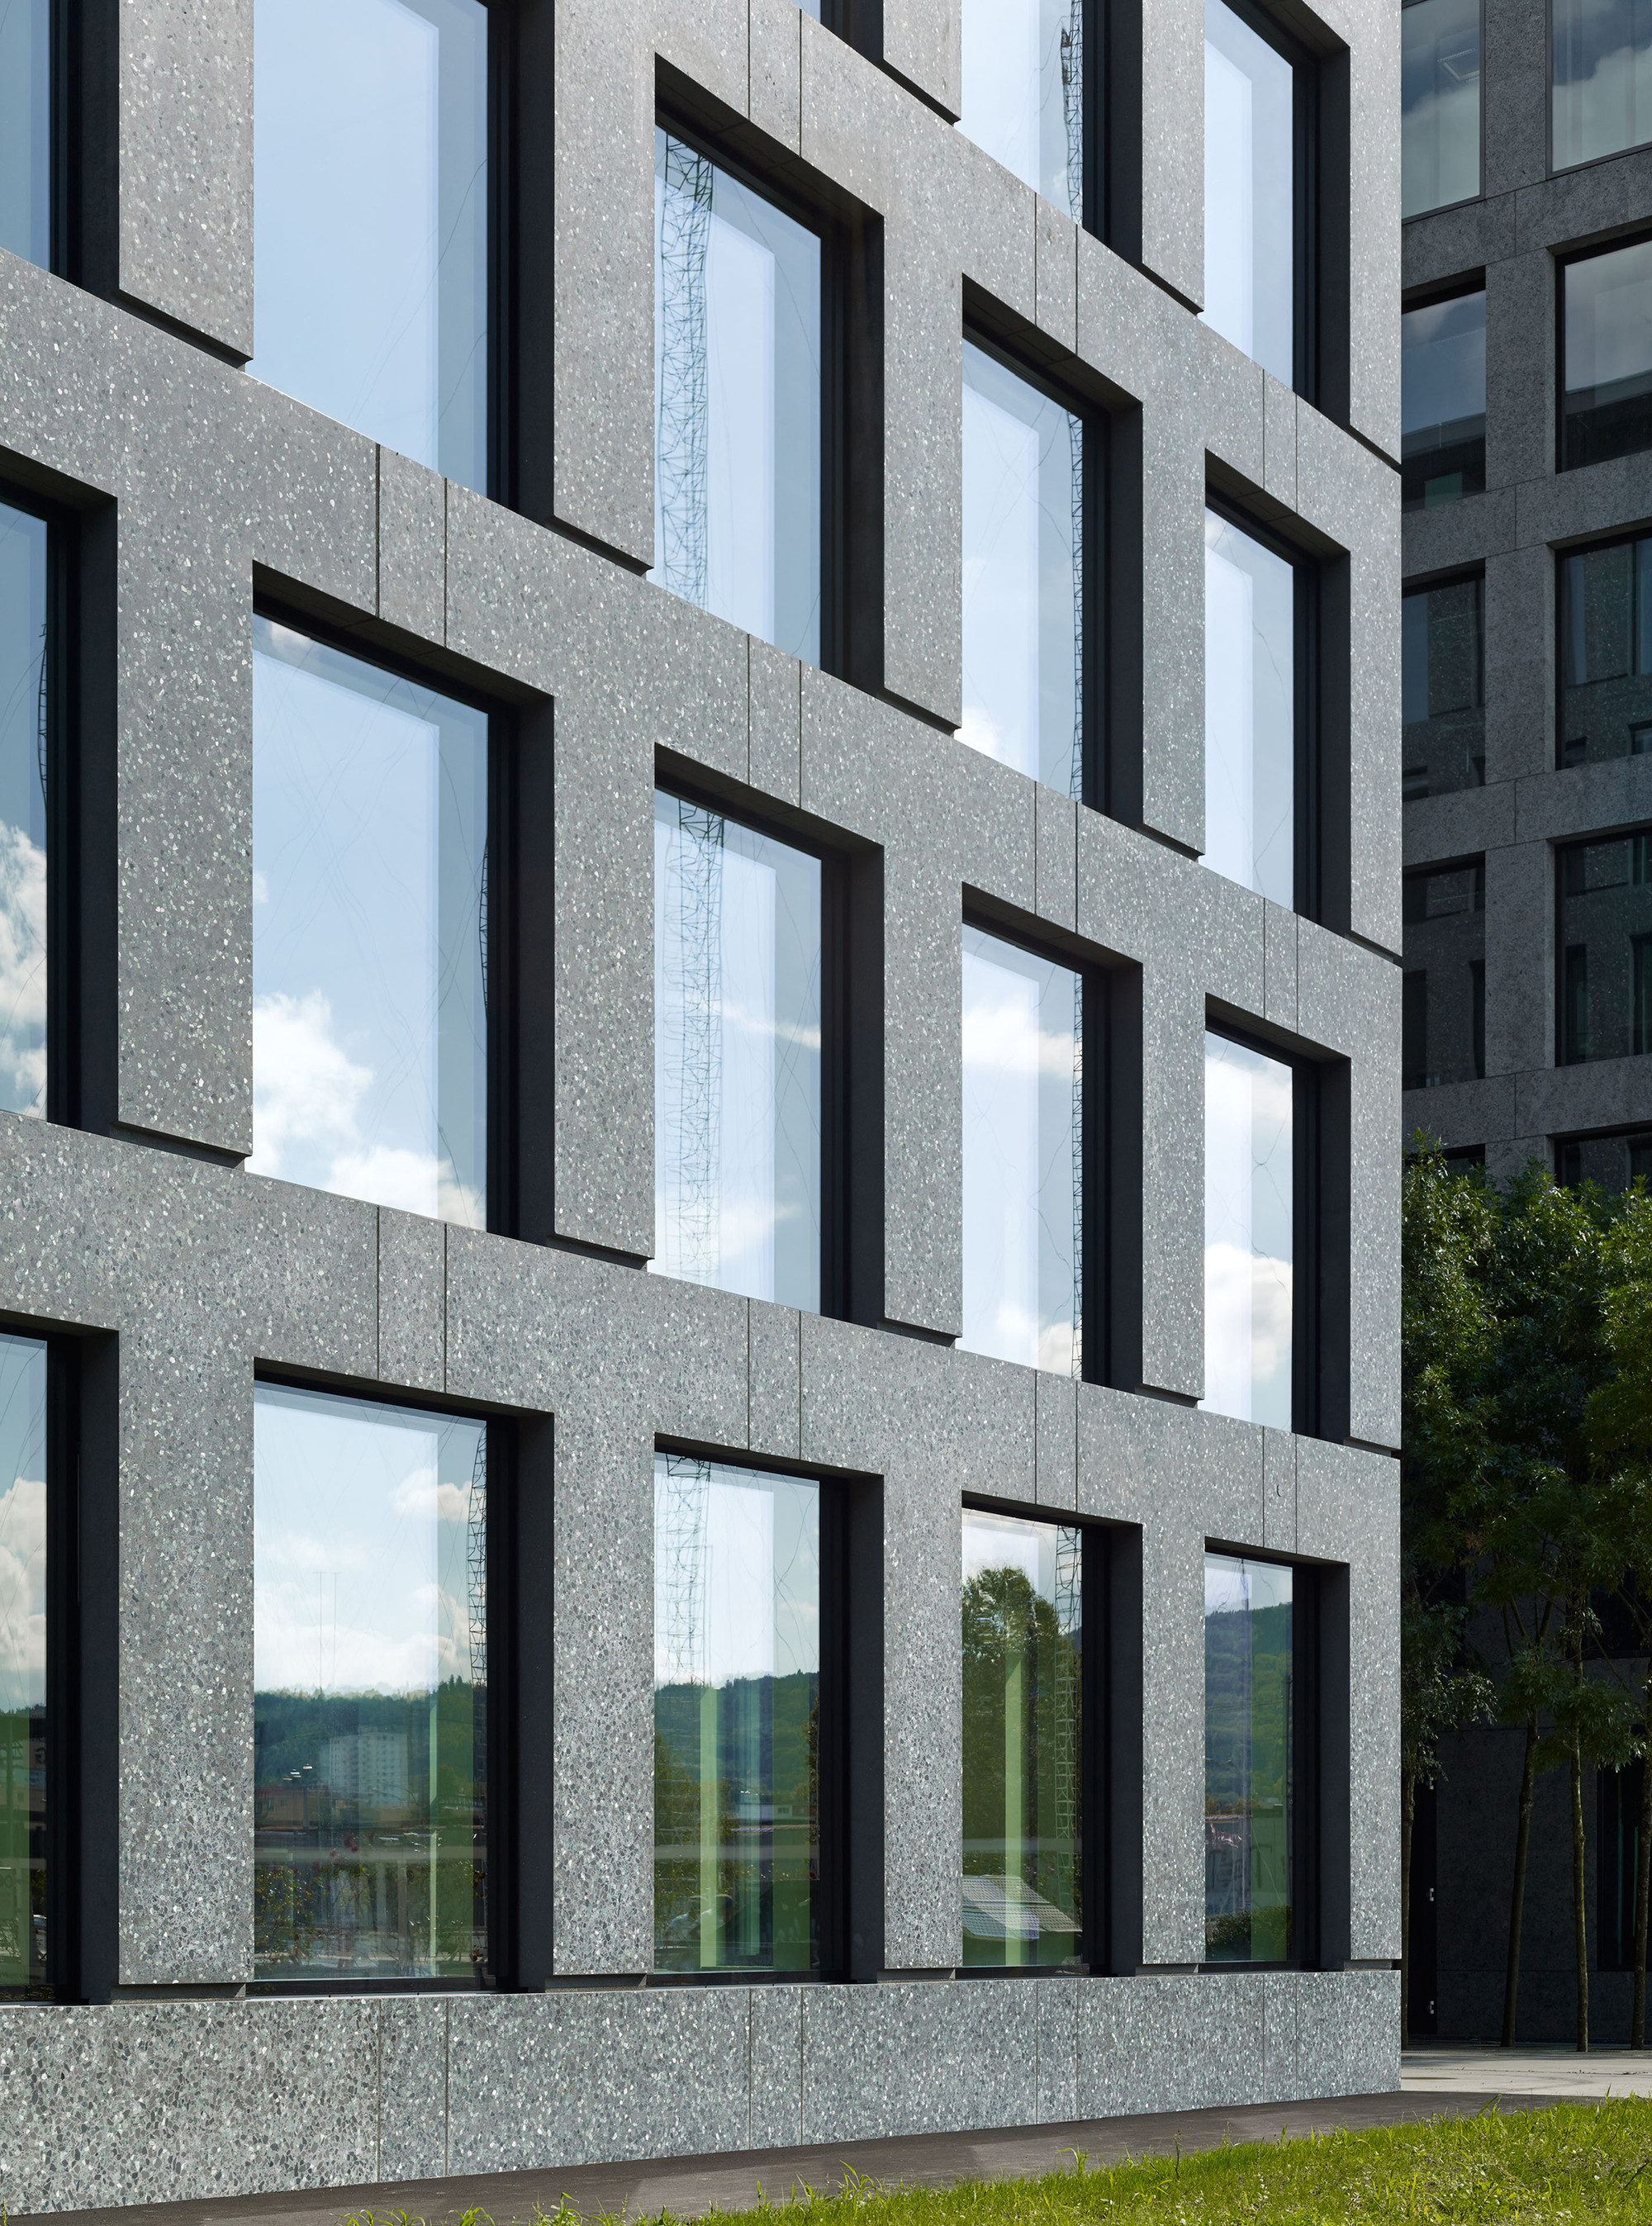 Concrete Building With Windows : Gallery of herostrasse office building max dudler